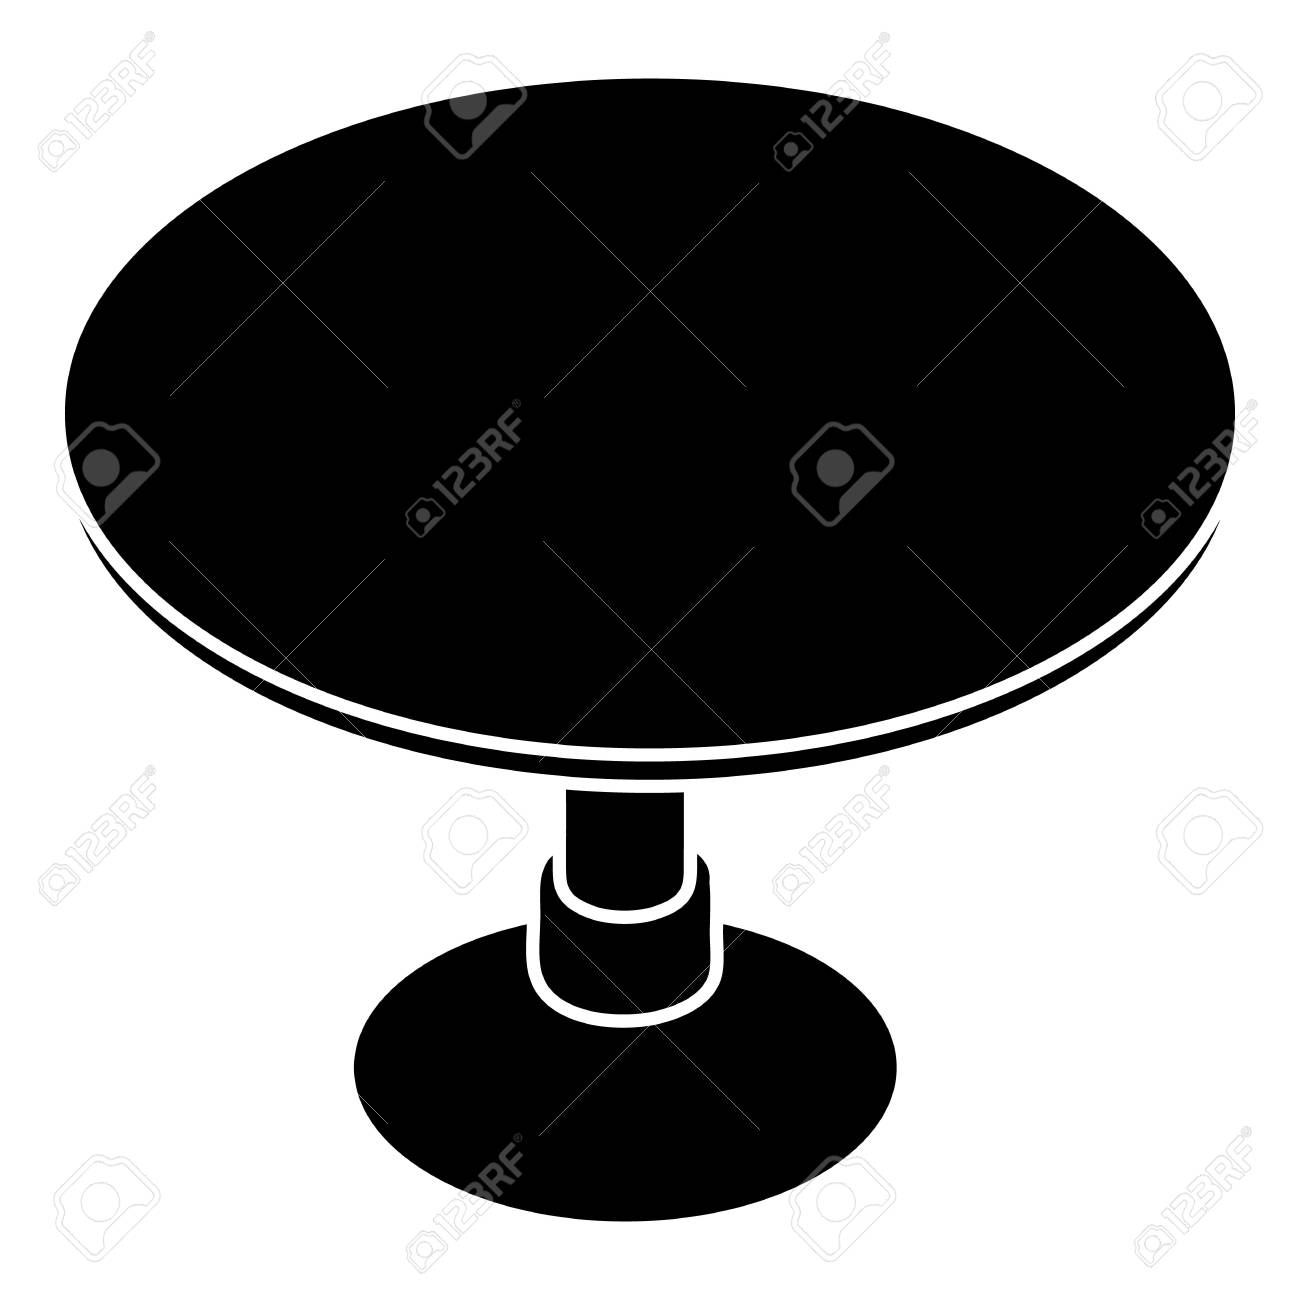 82c02093614b Round table icon. Simple illustration of round table vector icon for web  design isolated on